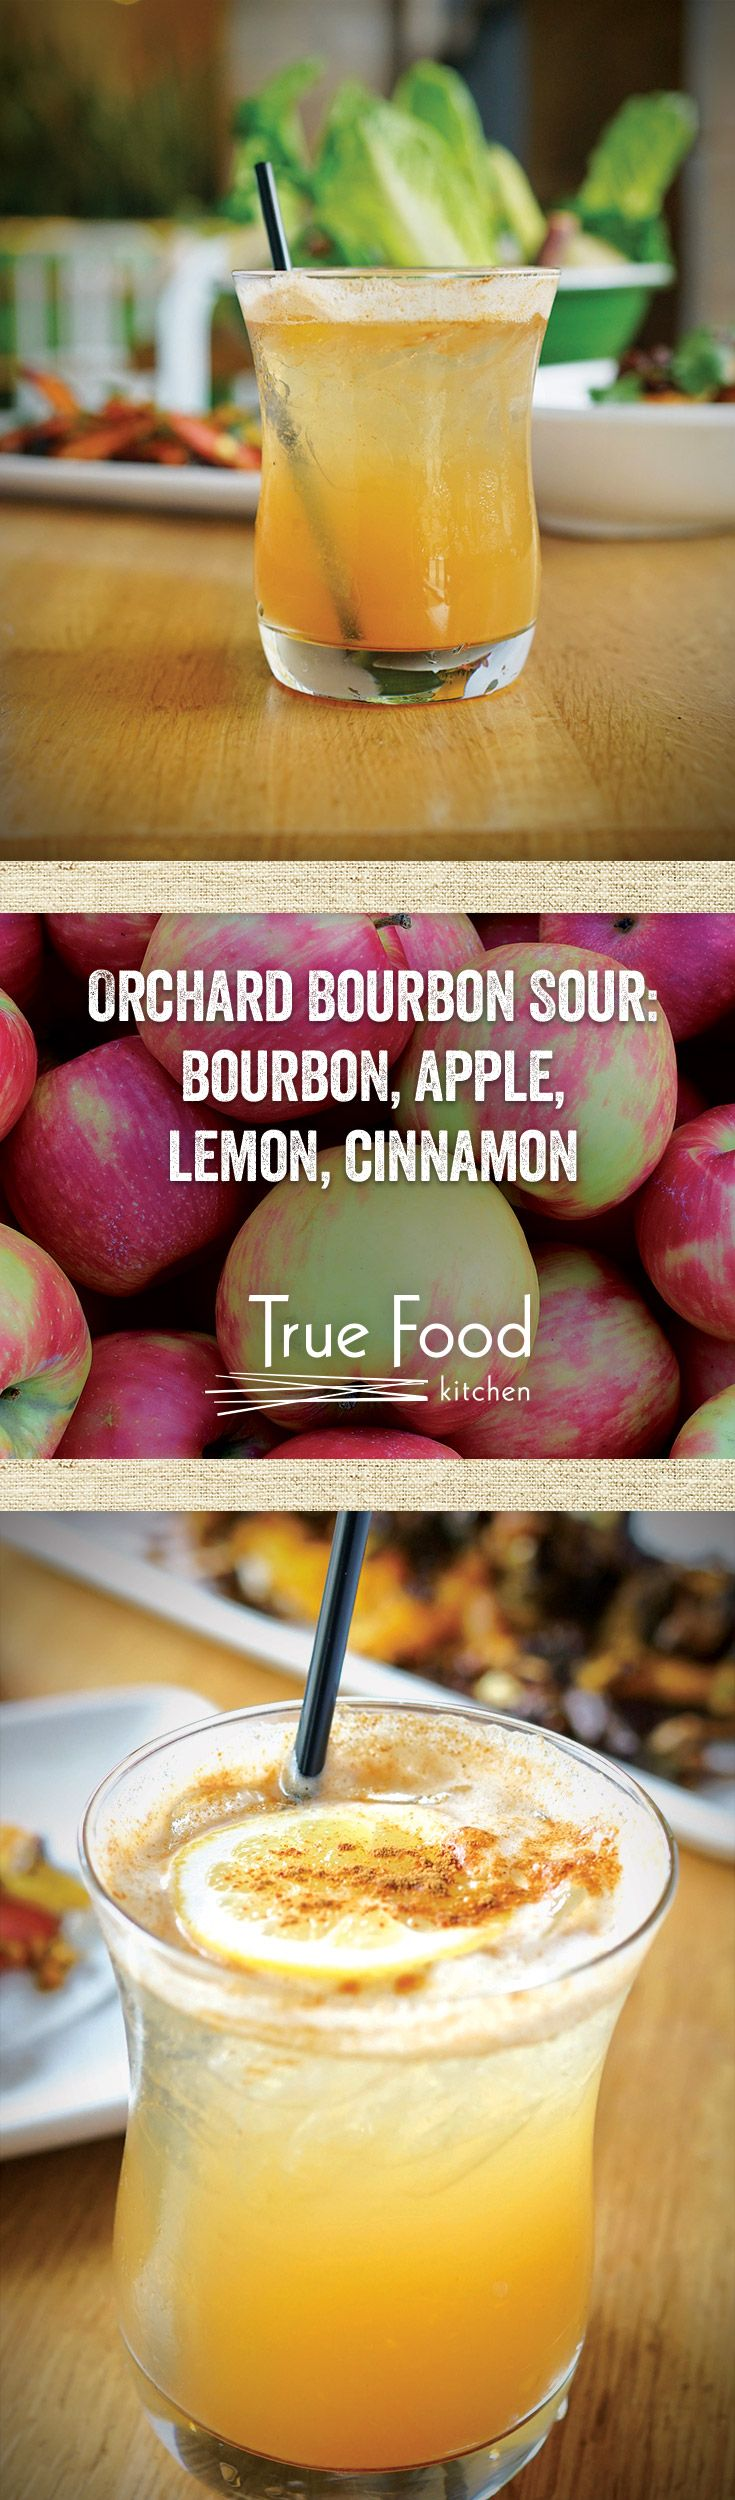 Orchard Bourbon Sour Power.